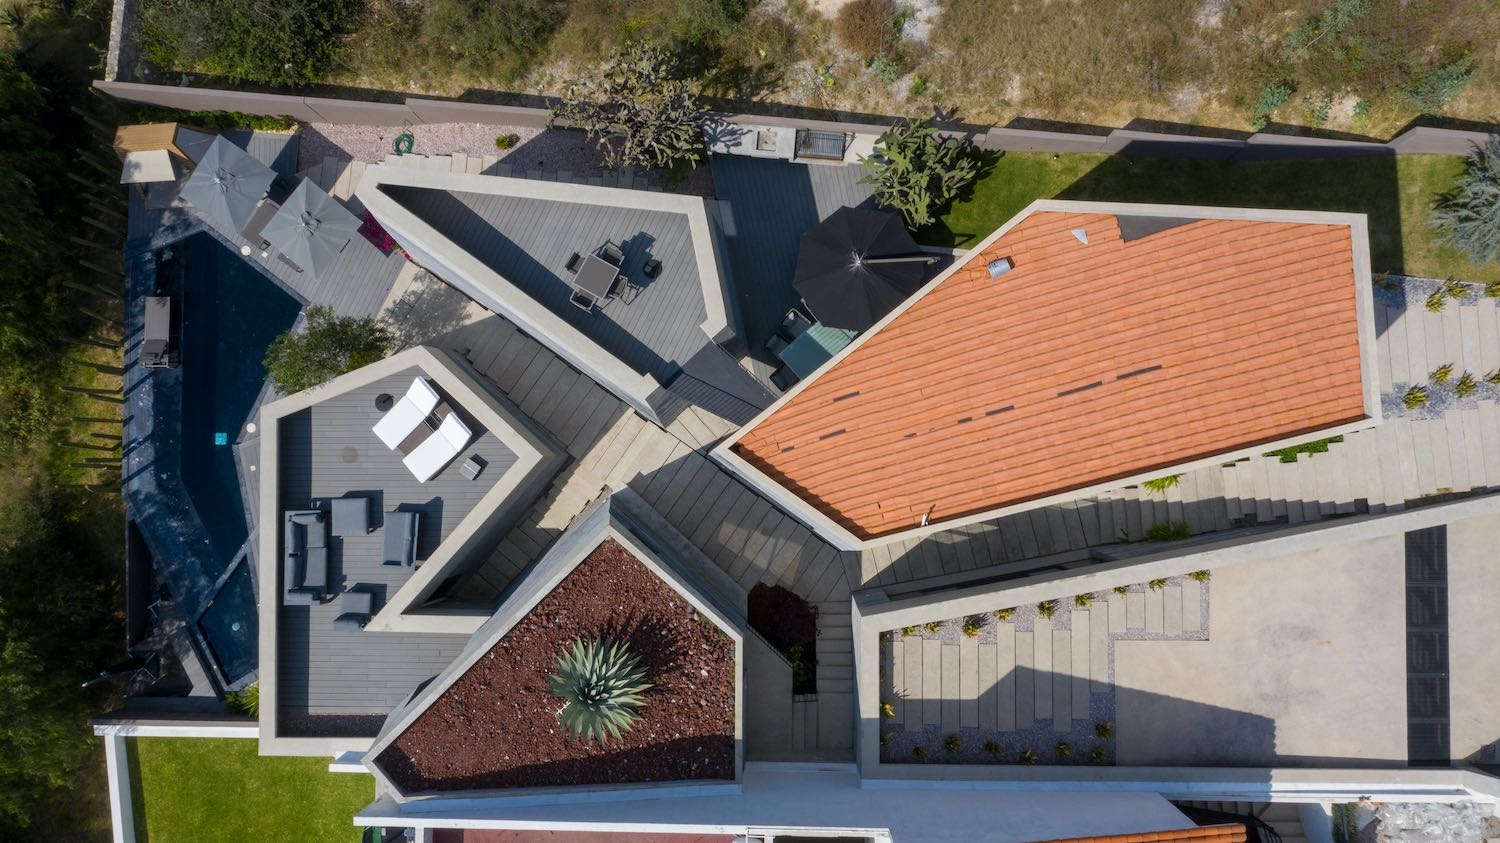 top view of the house captured with drone